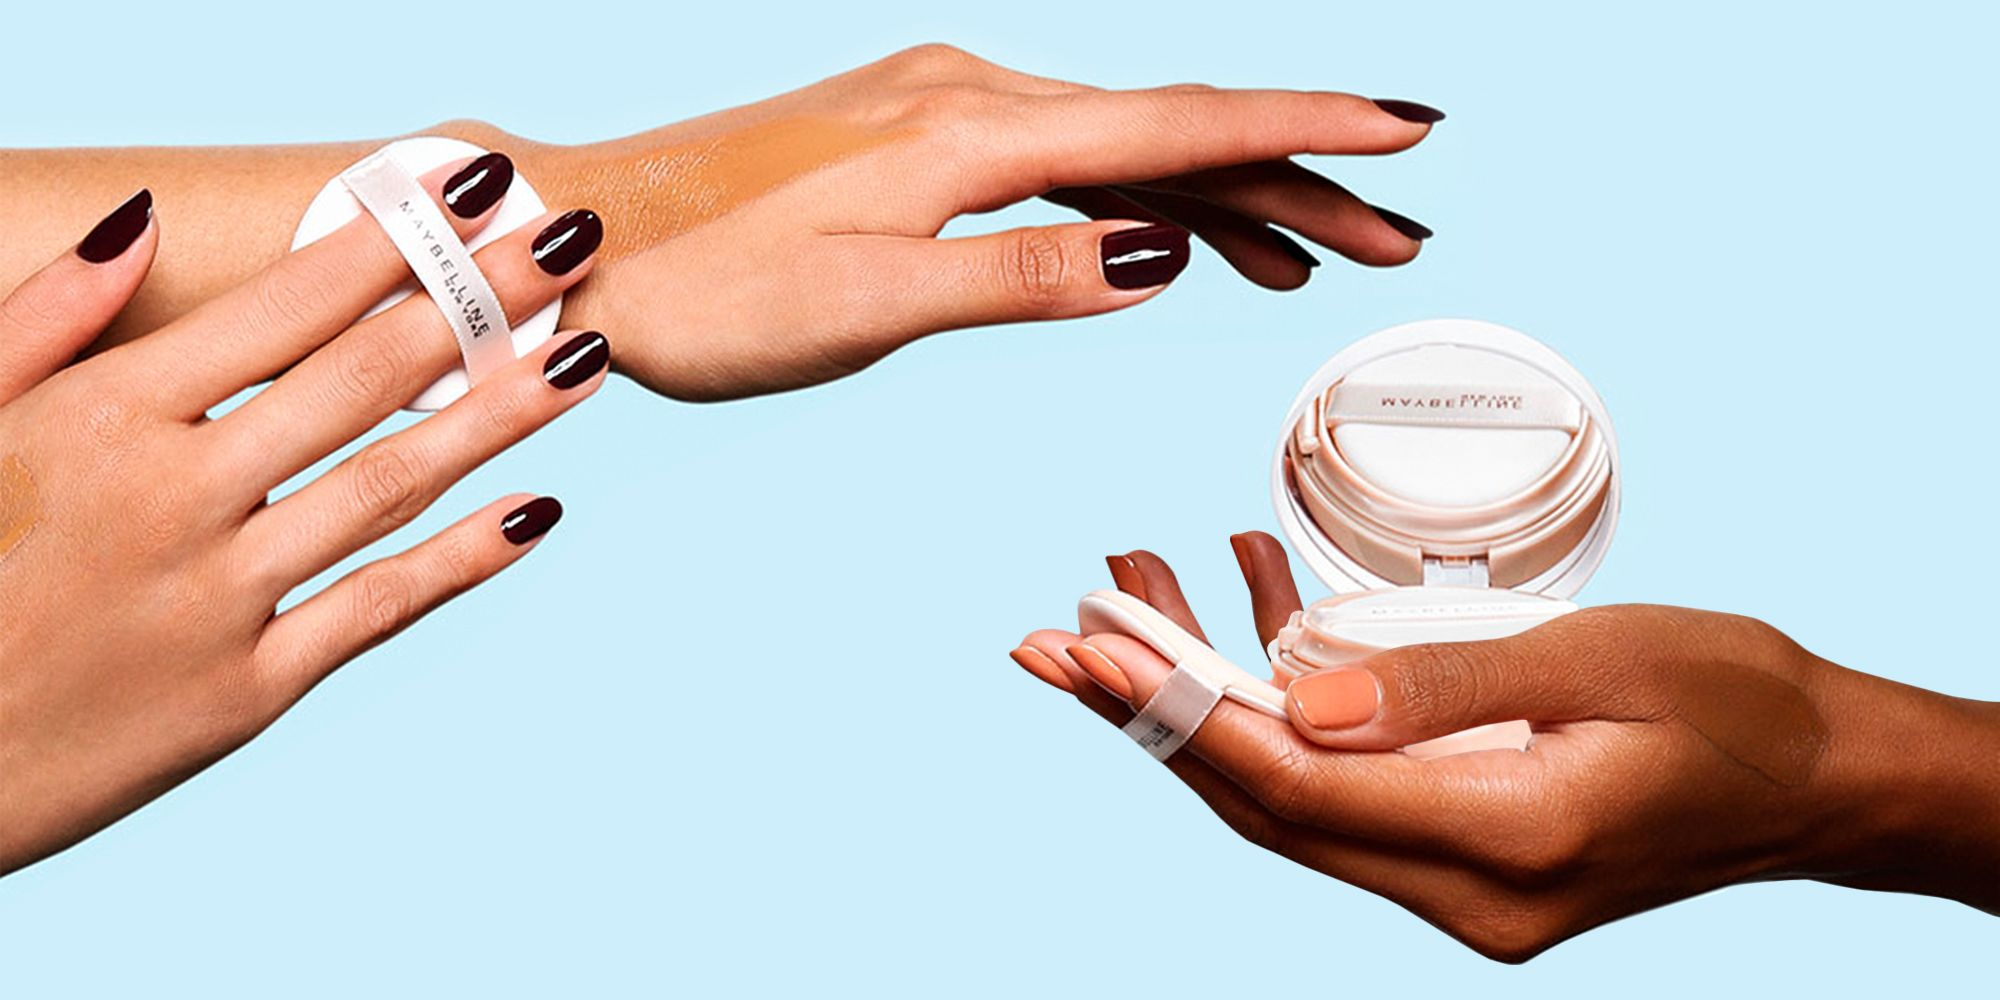 10 Cushion Compact Foundations Your Makeup Bag Is Begging For